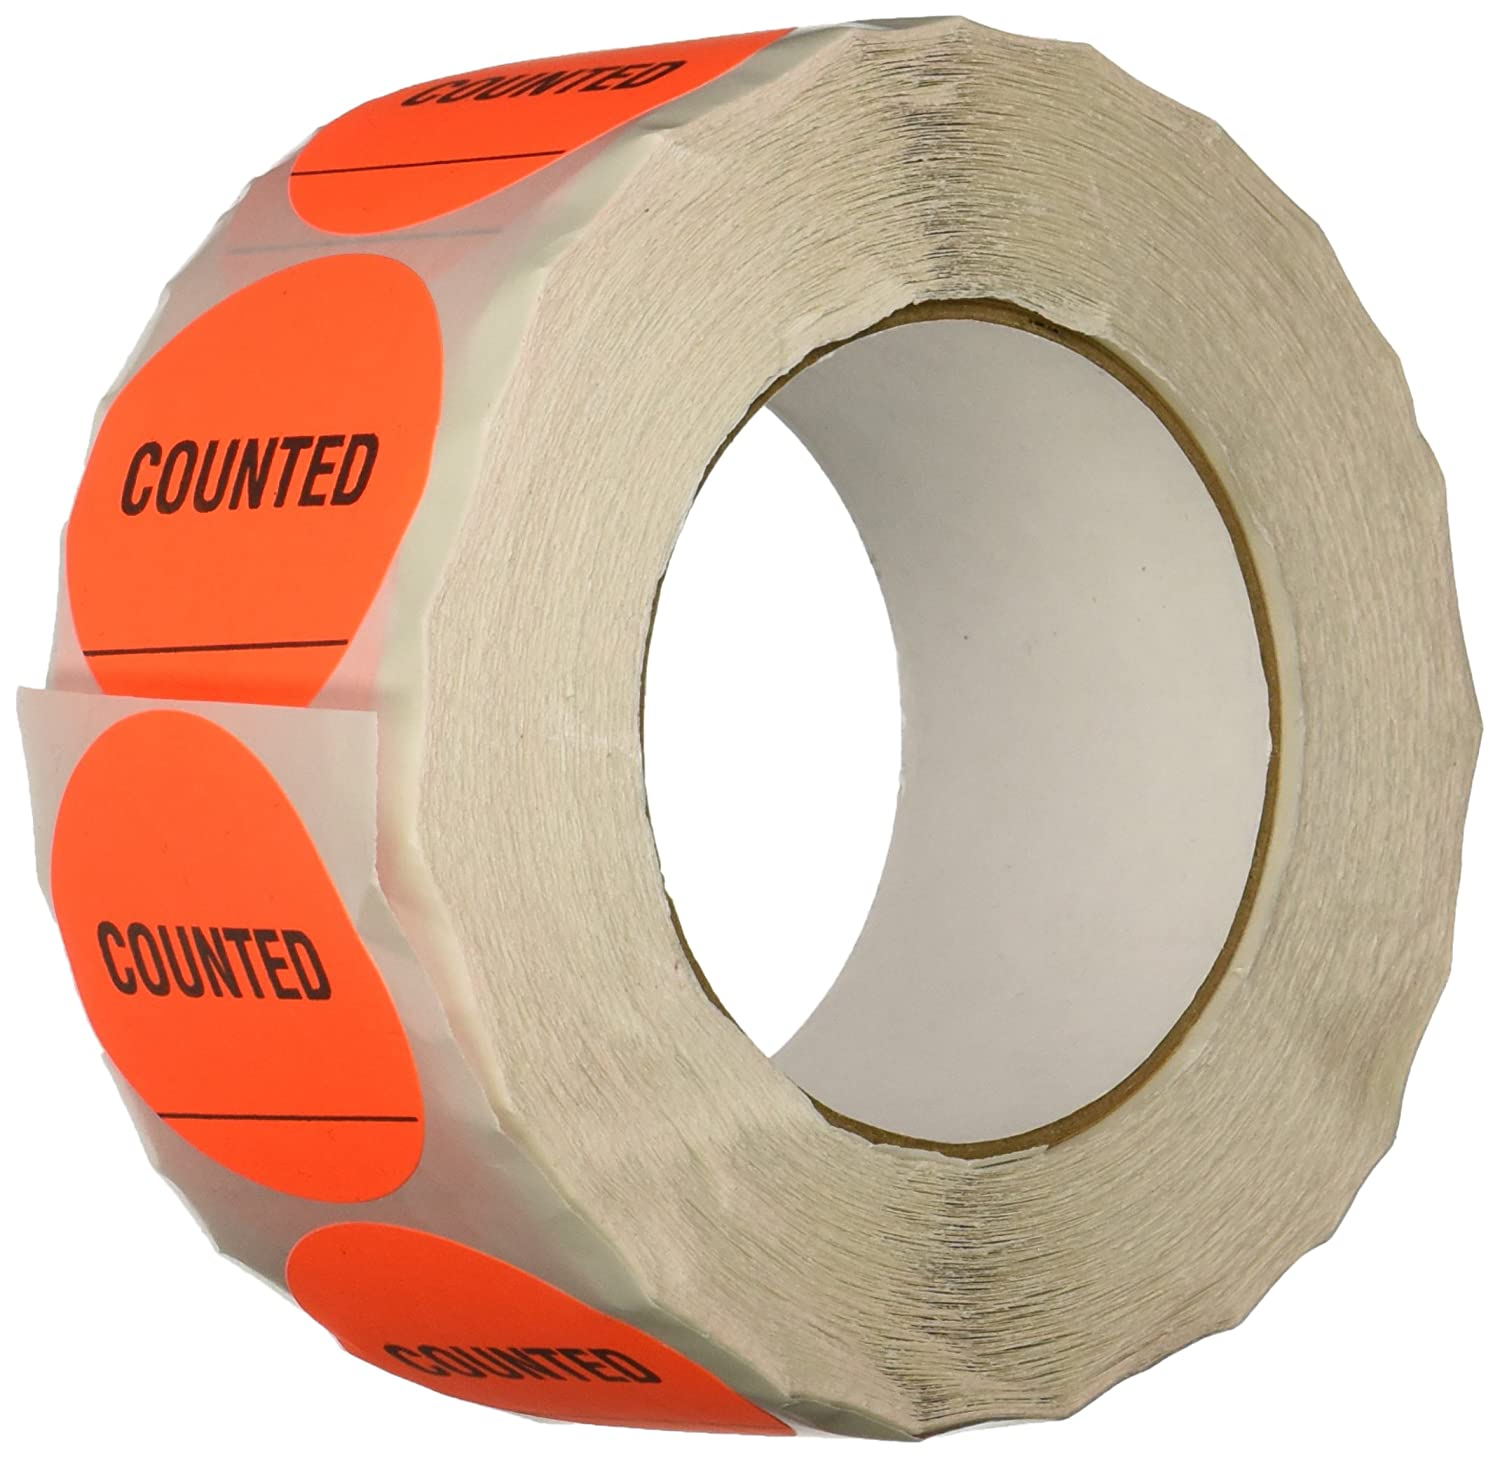 TapeCase Green'Counted' Inventory Control Label - 1000 per pack (1 Pack) INVLBL-023